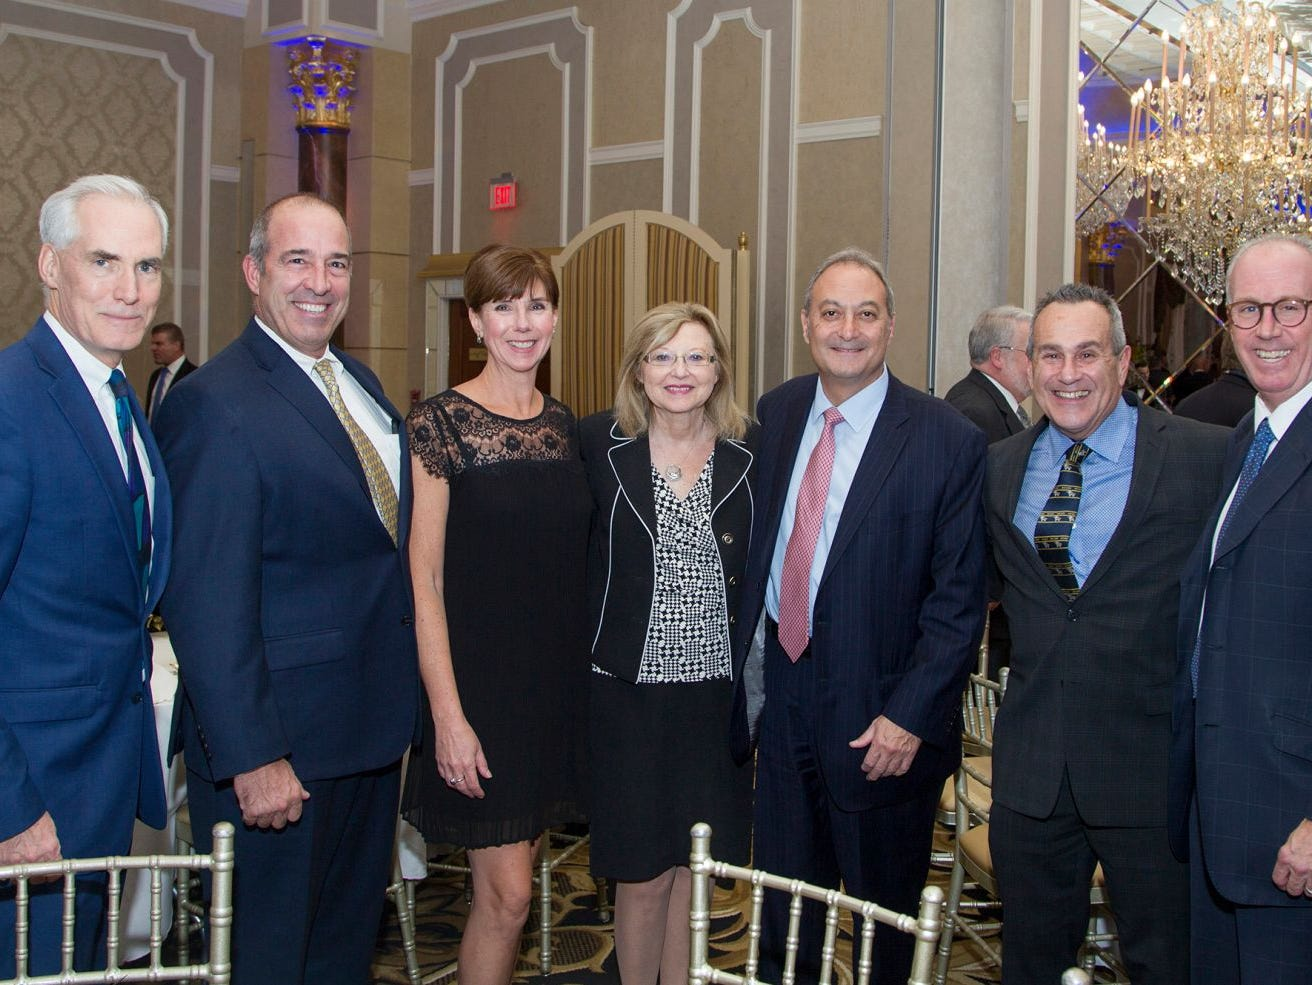 Sean O'Rourke, Steve Mosser, Kristen Silberstein, Maryann Kicenuik, Fernando Garip, Dr. Randy Tartacoff, Joe Parisi. Holy Name Medical Center held its 2018 MS Center Awards Reception at the Venetian in Garfield. 10/23/2018